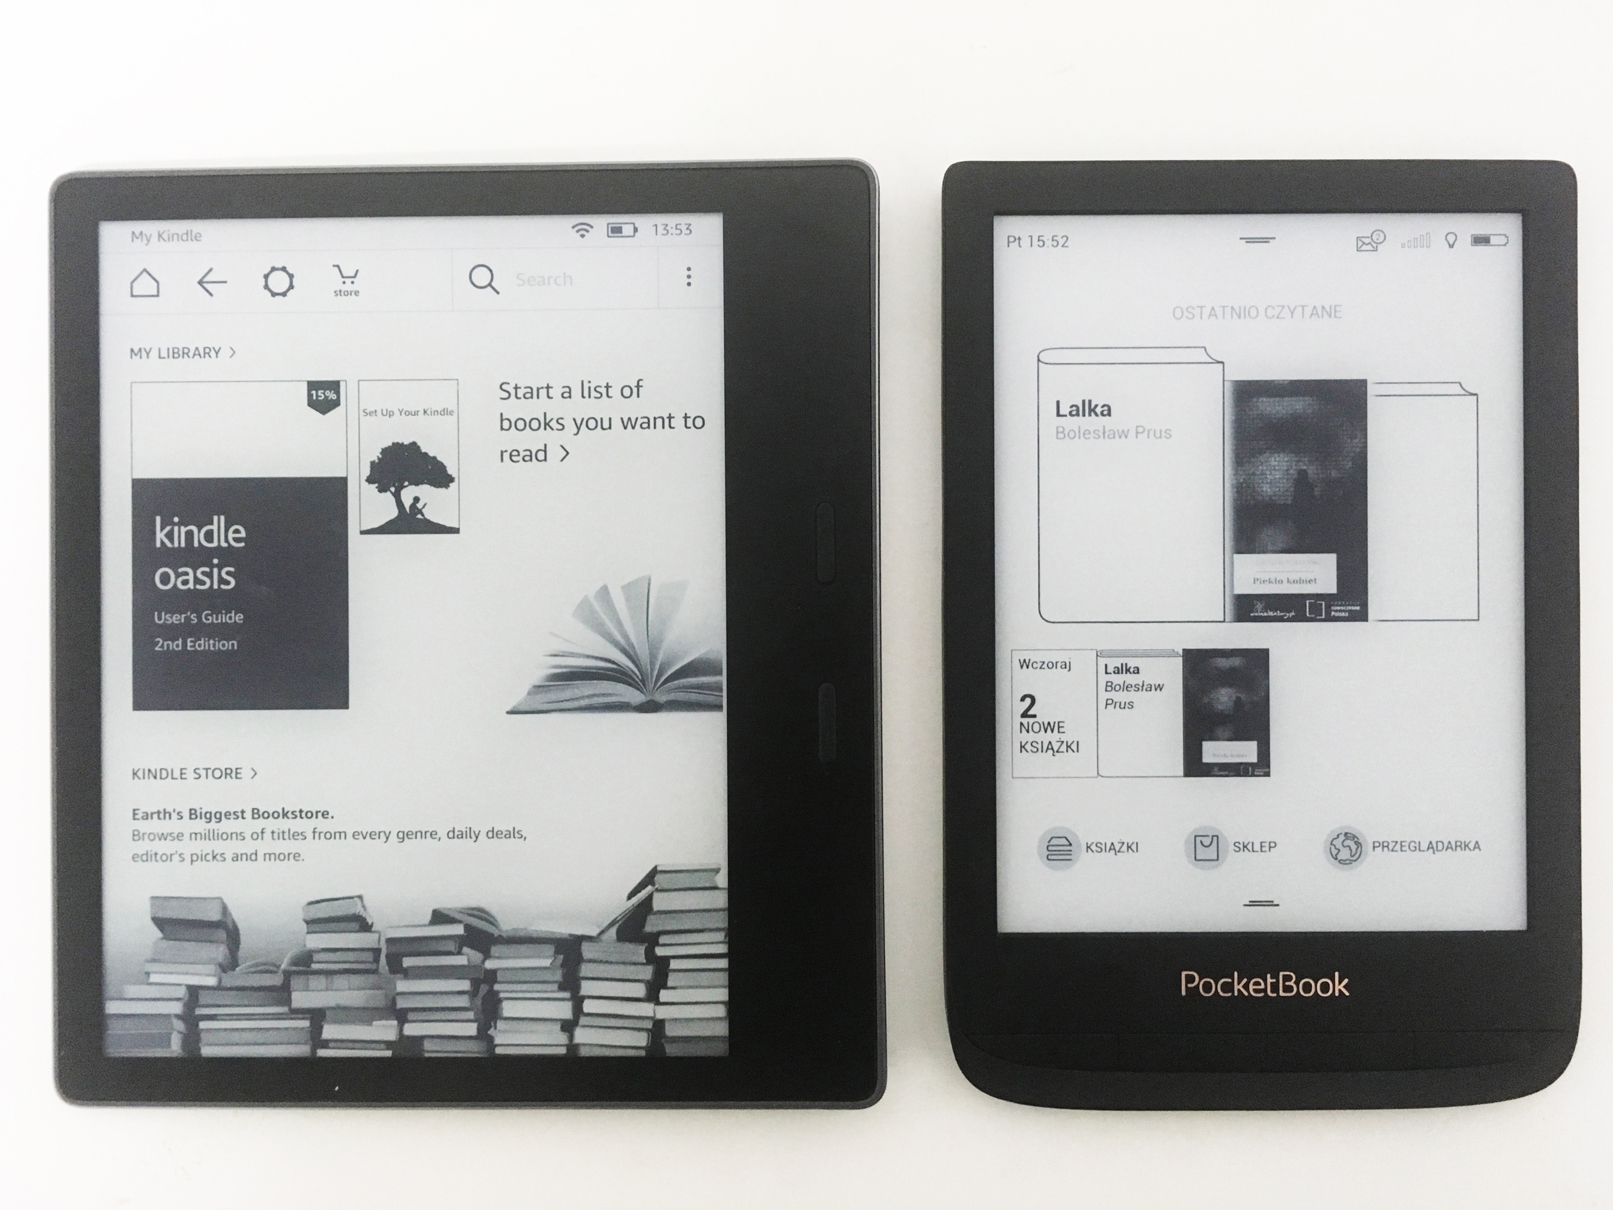 ekran główny kindle oasis 2 pocketbook touch lux 4